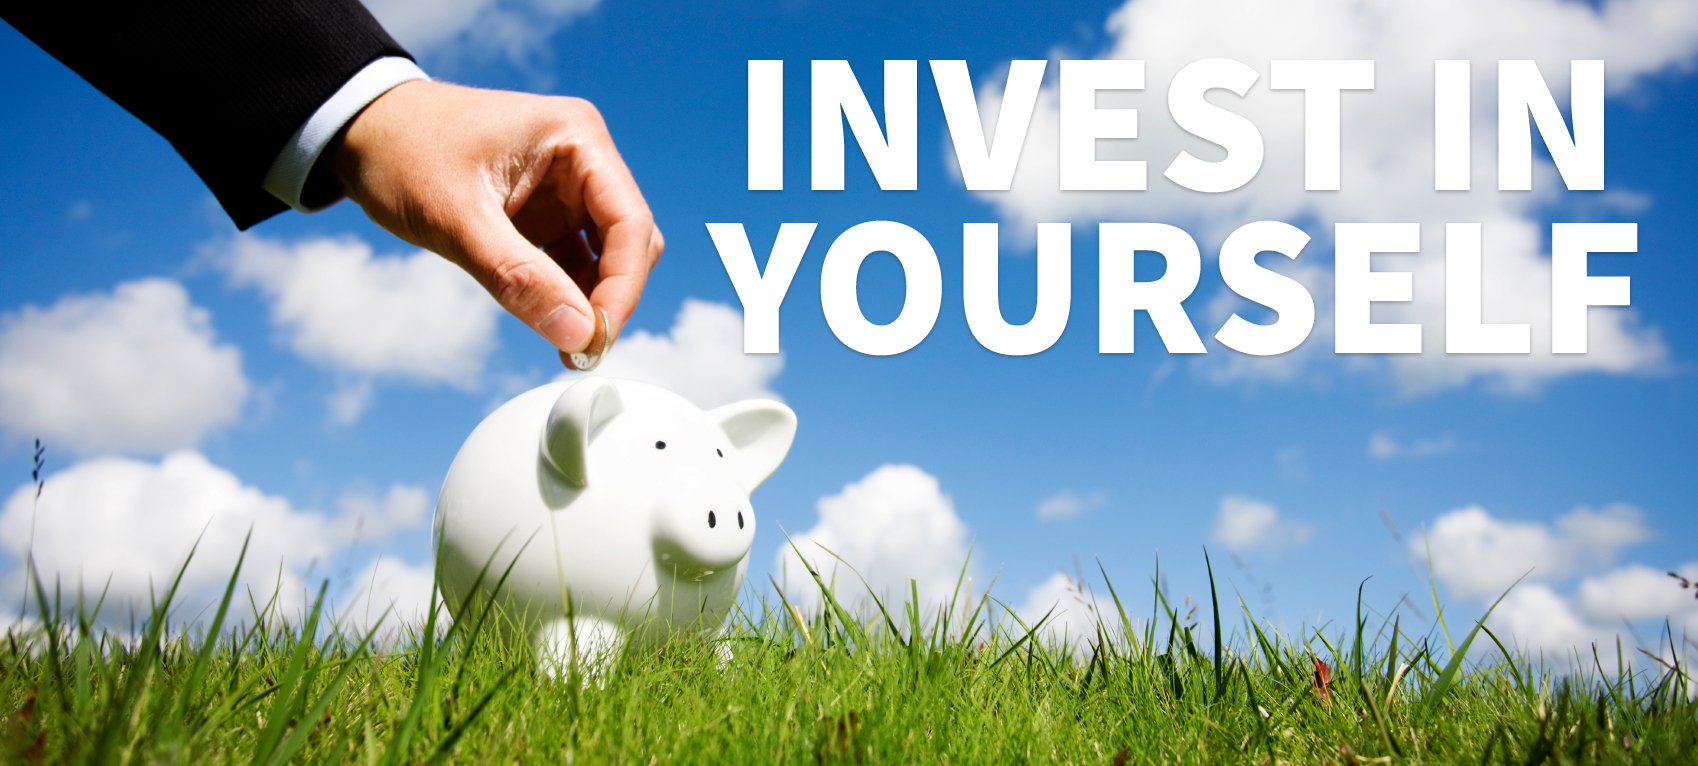 invest in yourself your business and your future robert devore